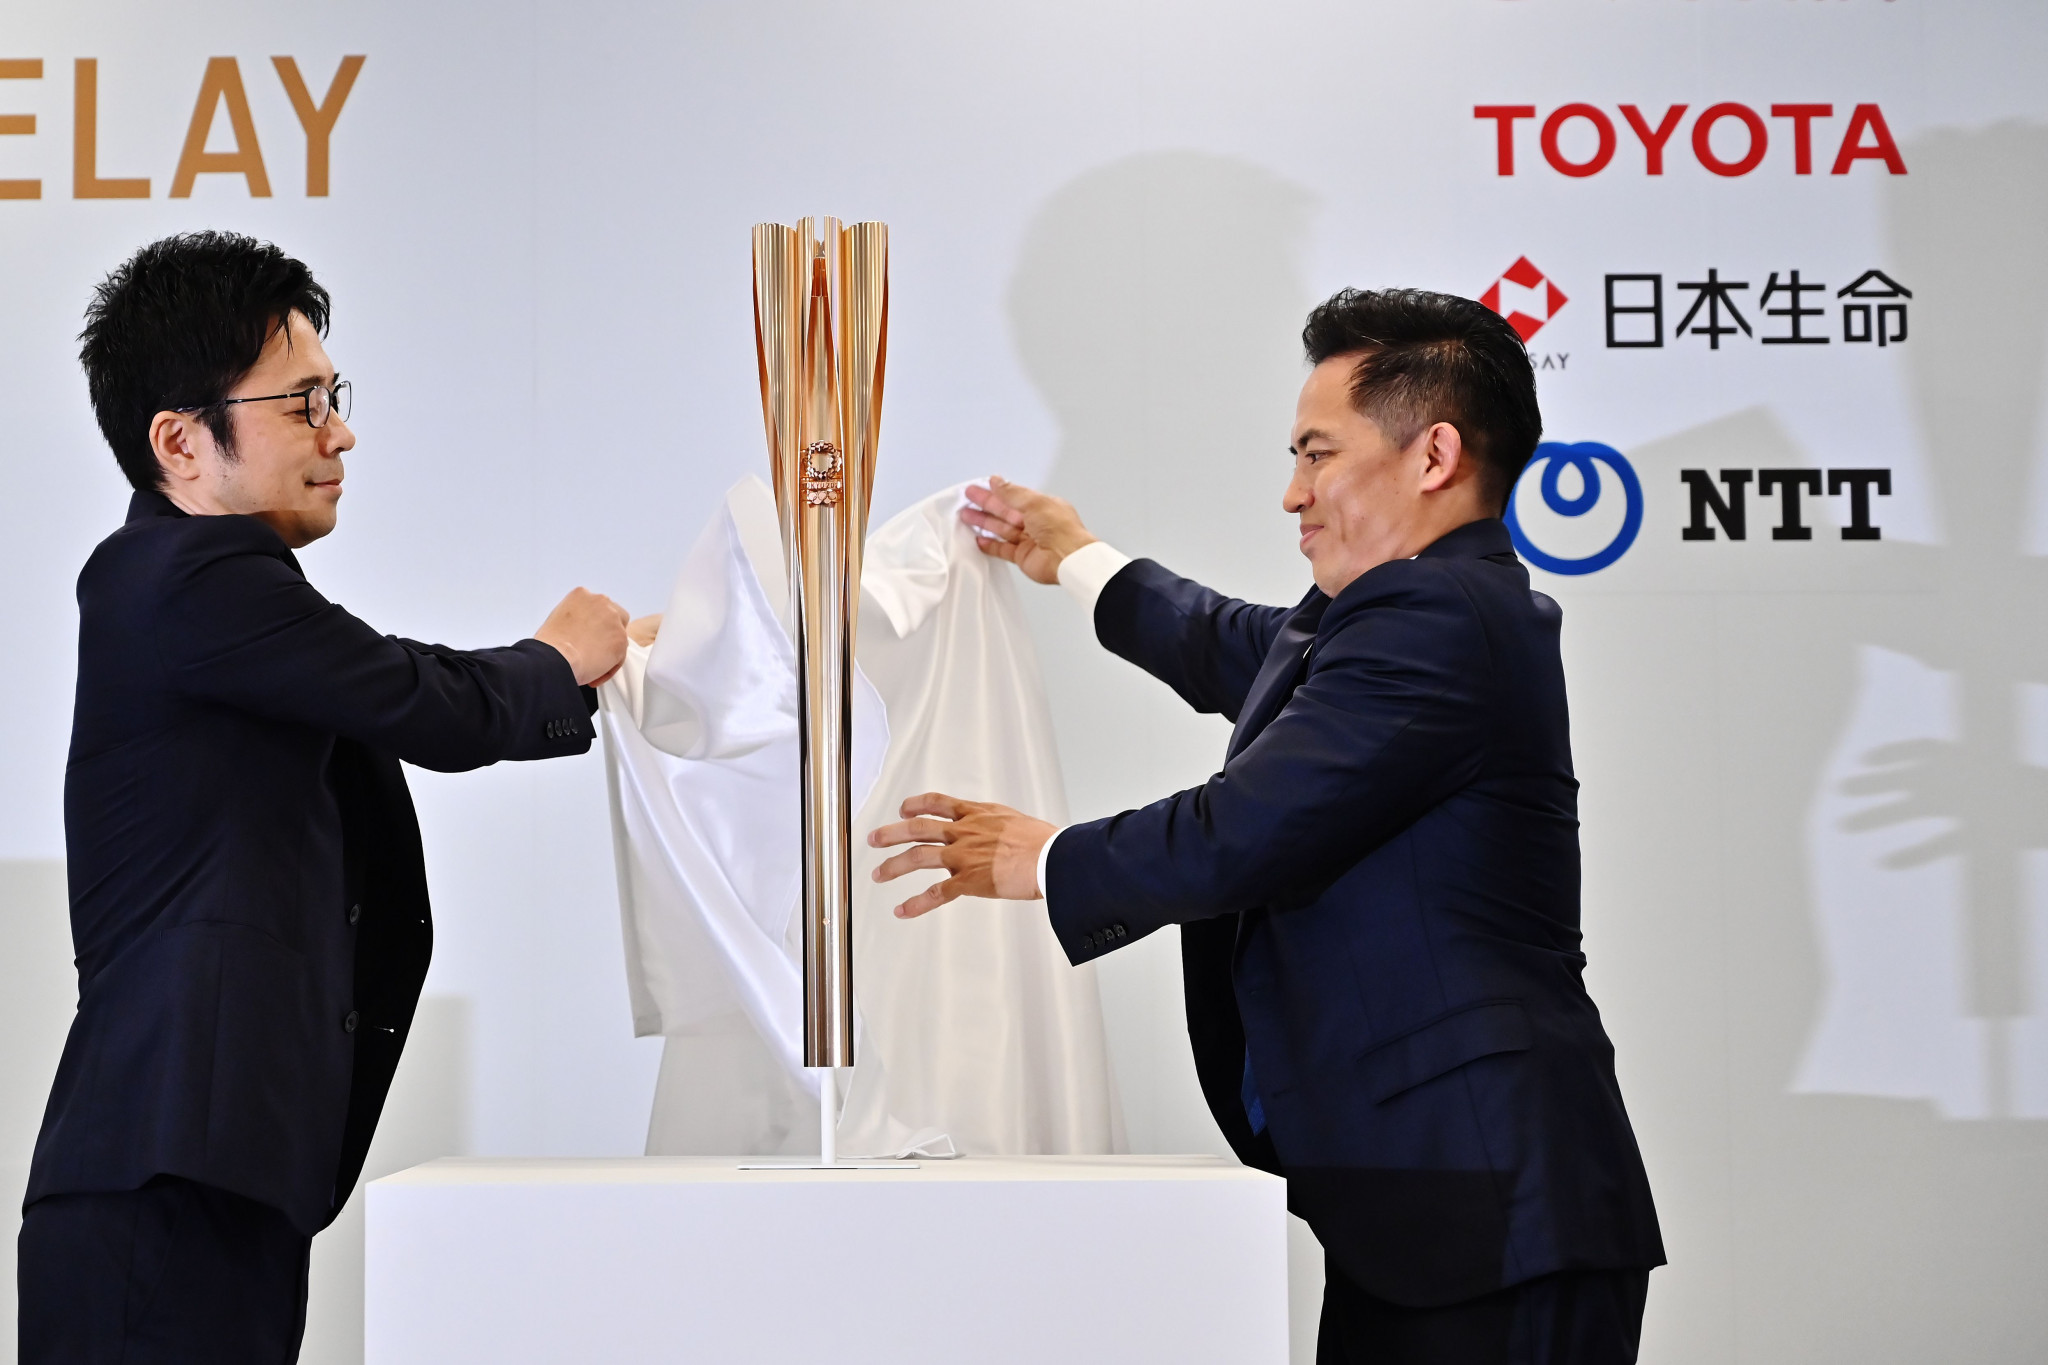 Tokujin Yoshioka, left, helped unveil the design of the Tokyo 2020 Olympic Torch in March 2019 ©Getty Images